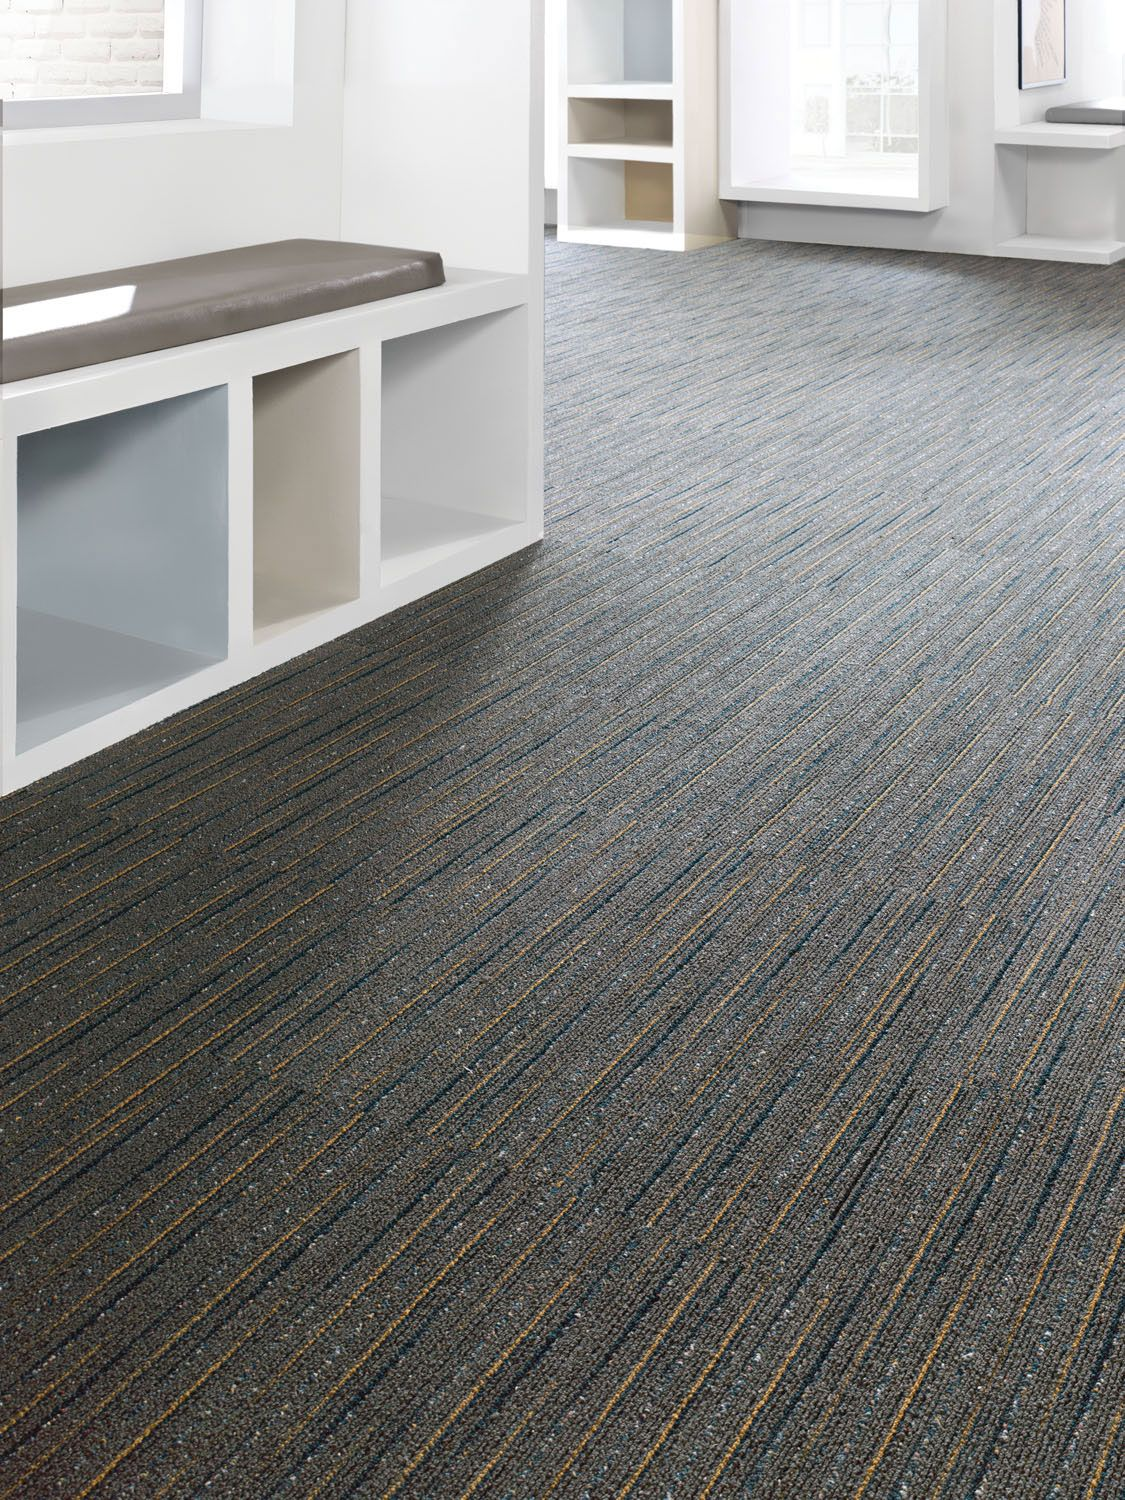 Mohawk Group  Commercial Flooring  Woven, Broadloom And